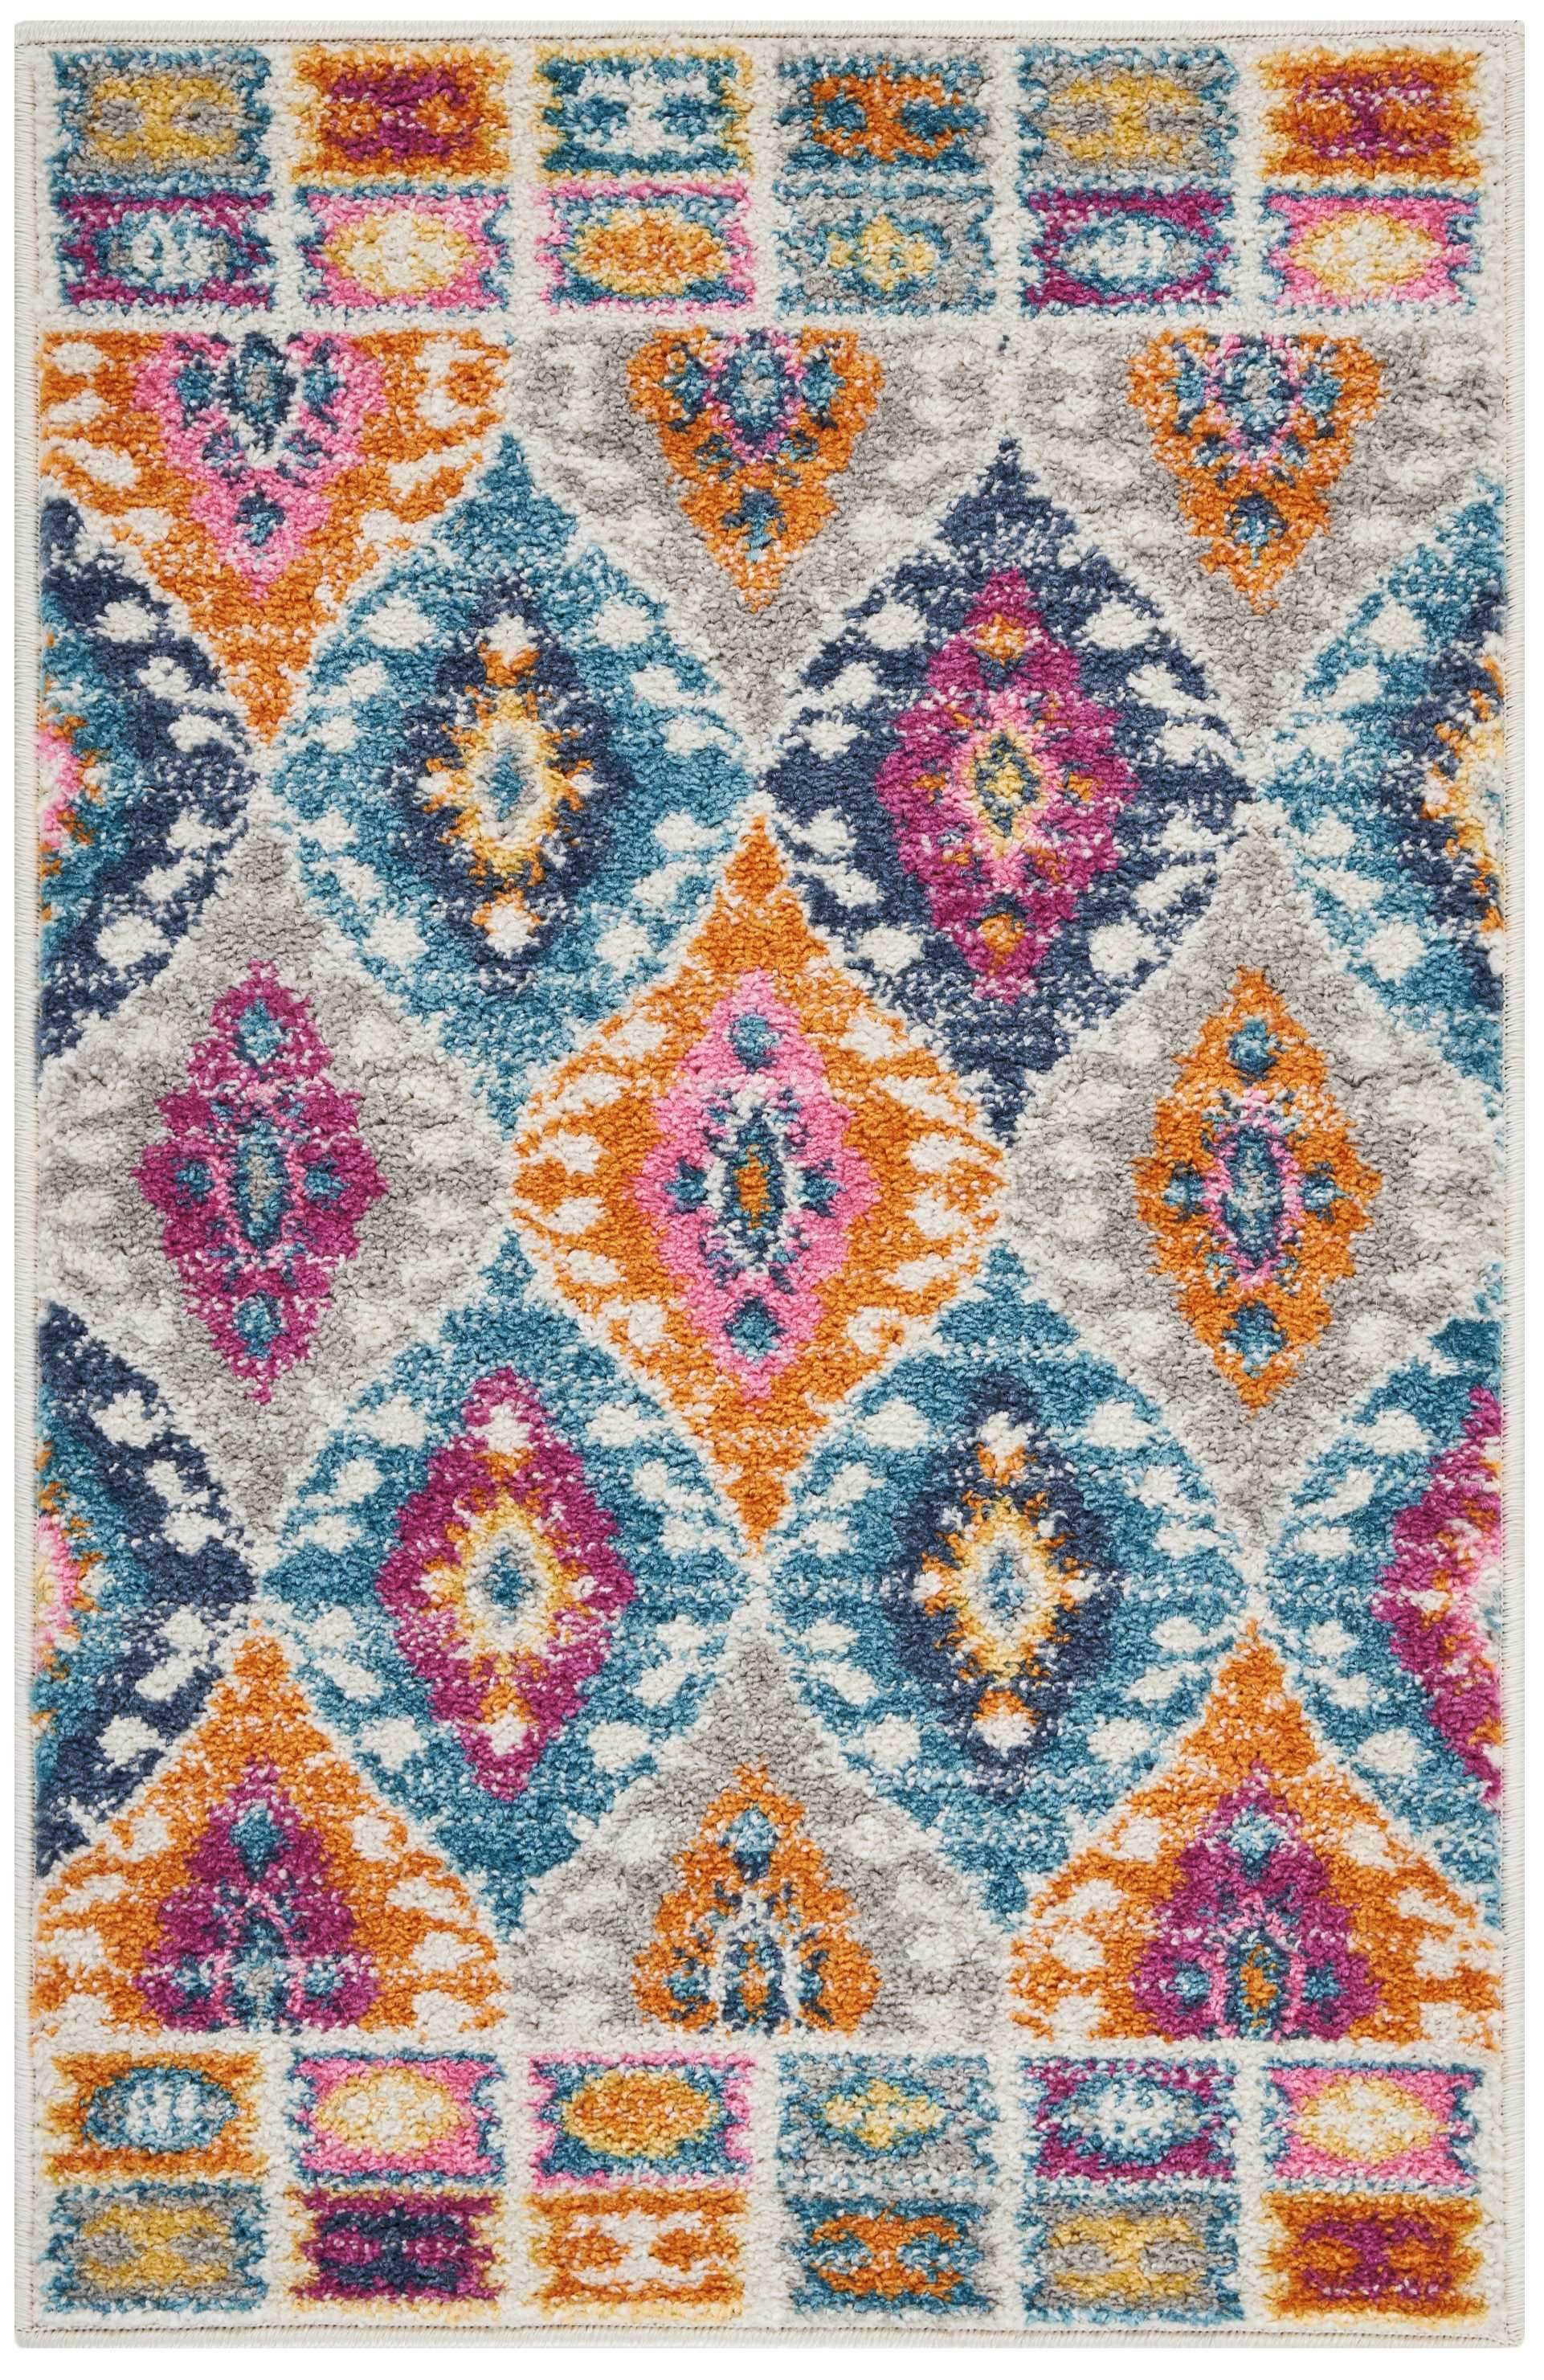 "Passion PSN02 Multicolor Area Rug-Area Rug-Nourison-1'10"" x 2'10""-The Rug Truck"